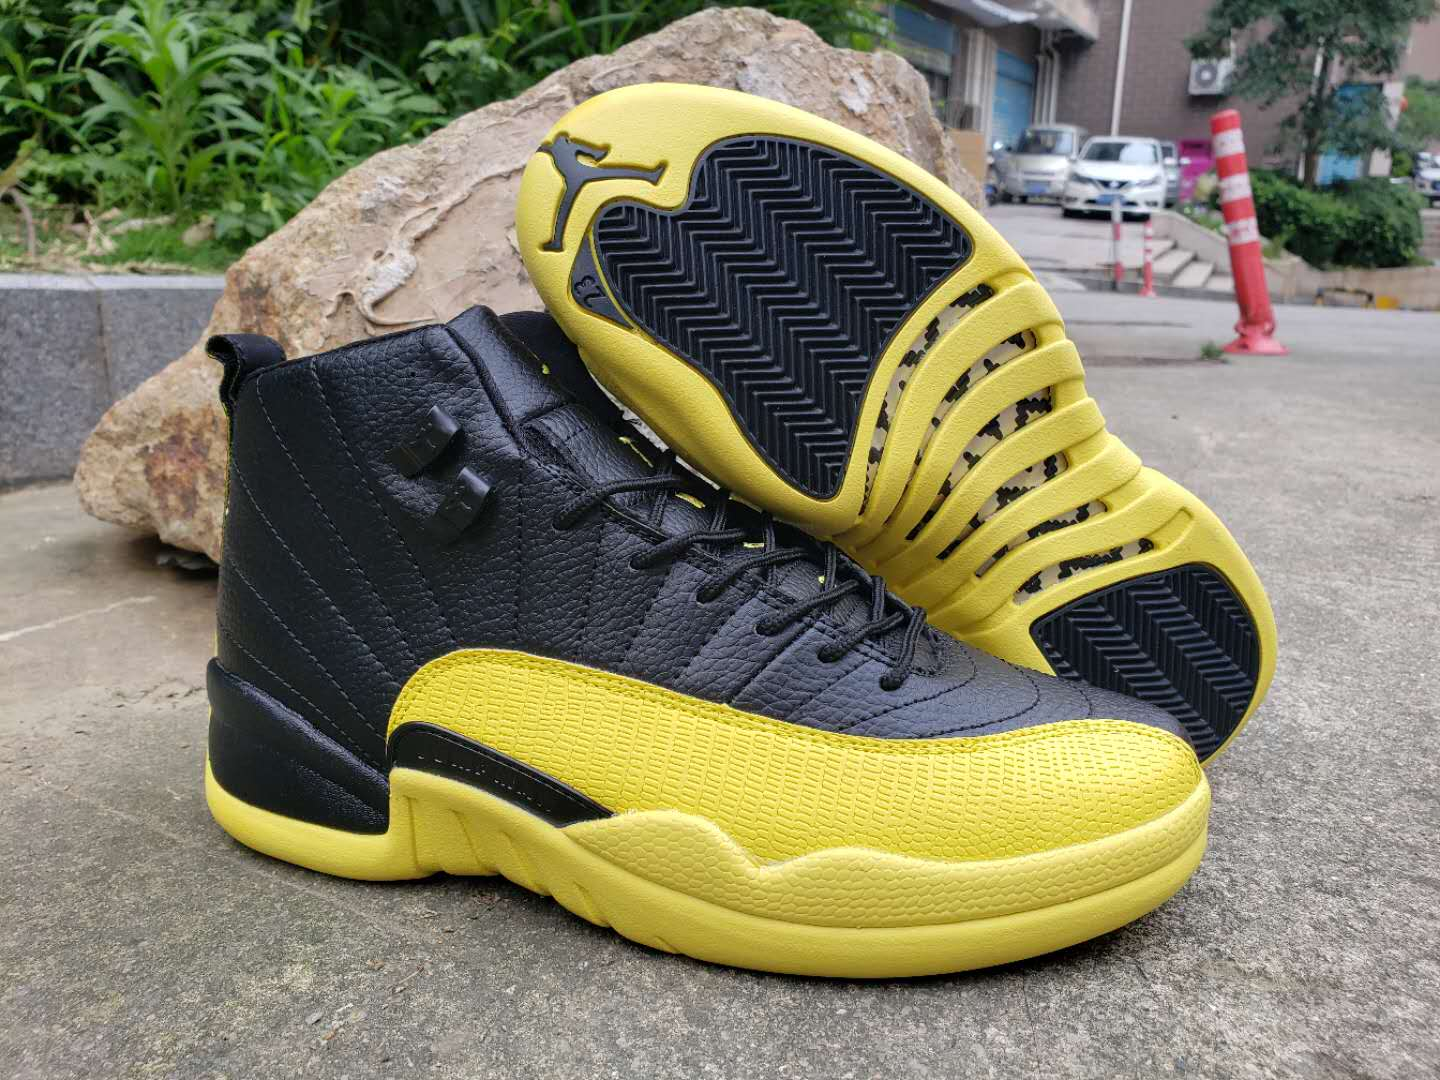 Air Jordan 12 High Bumblebee Yellow Black Shoes